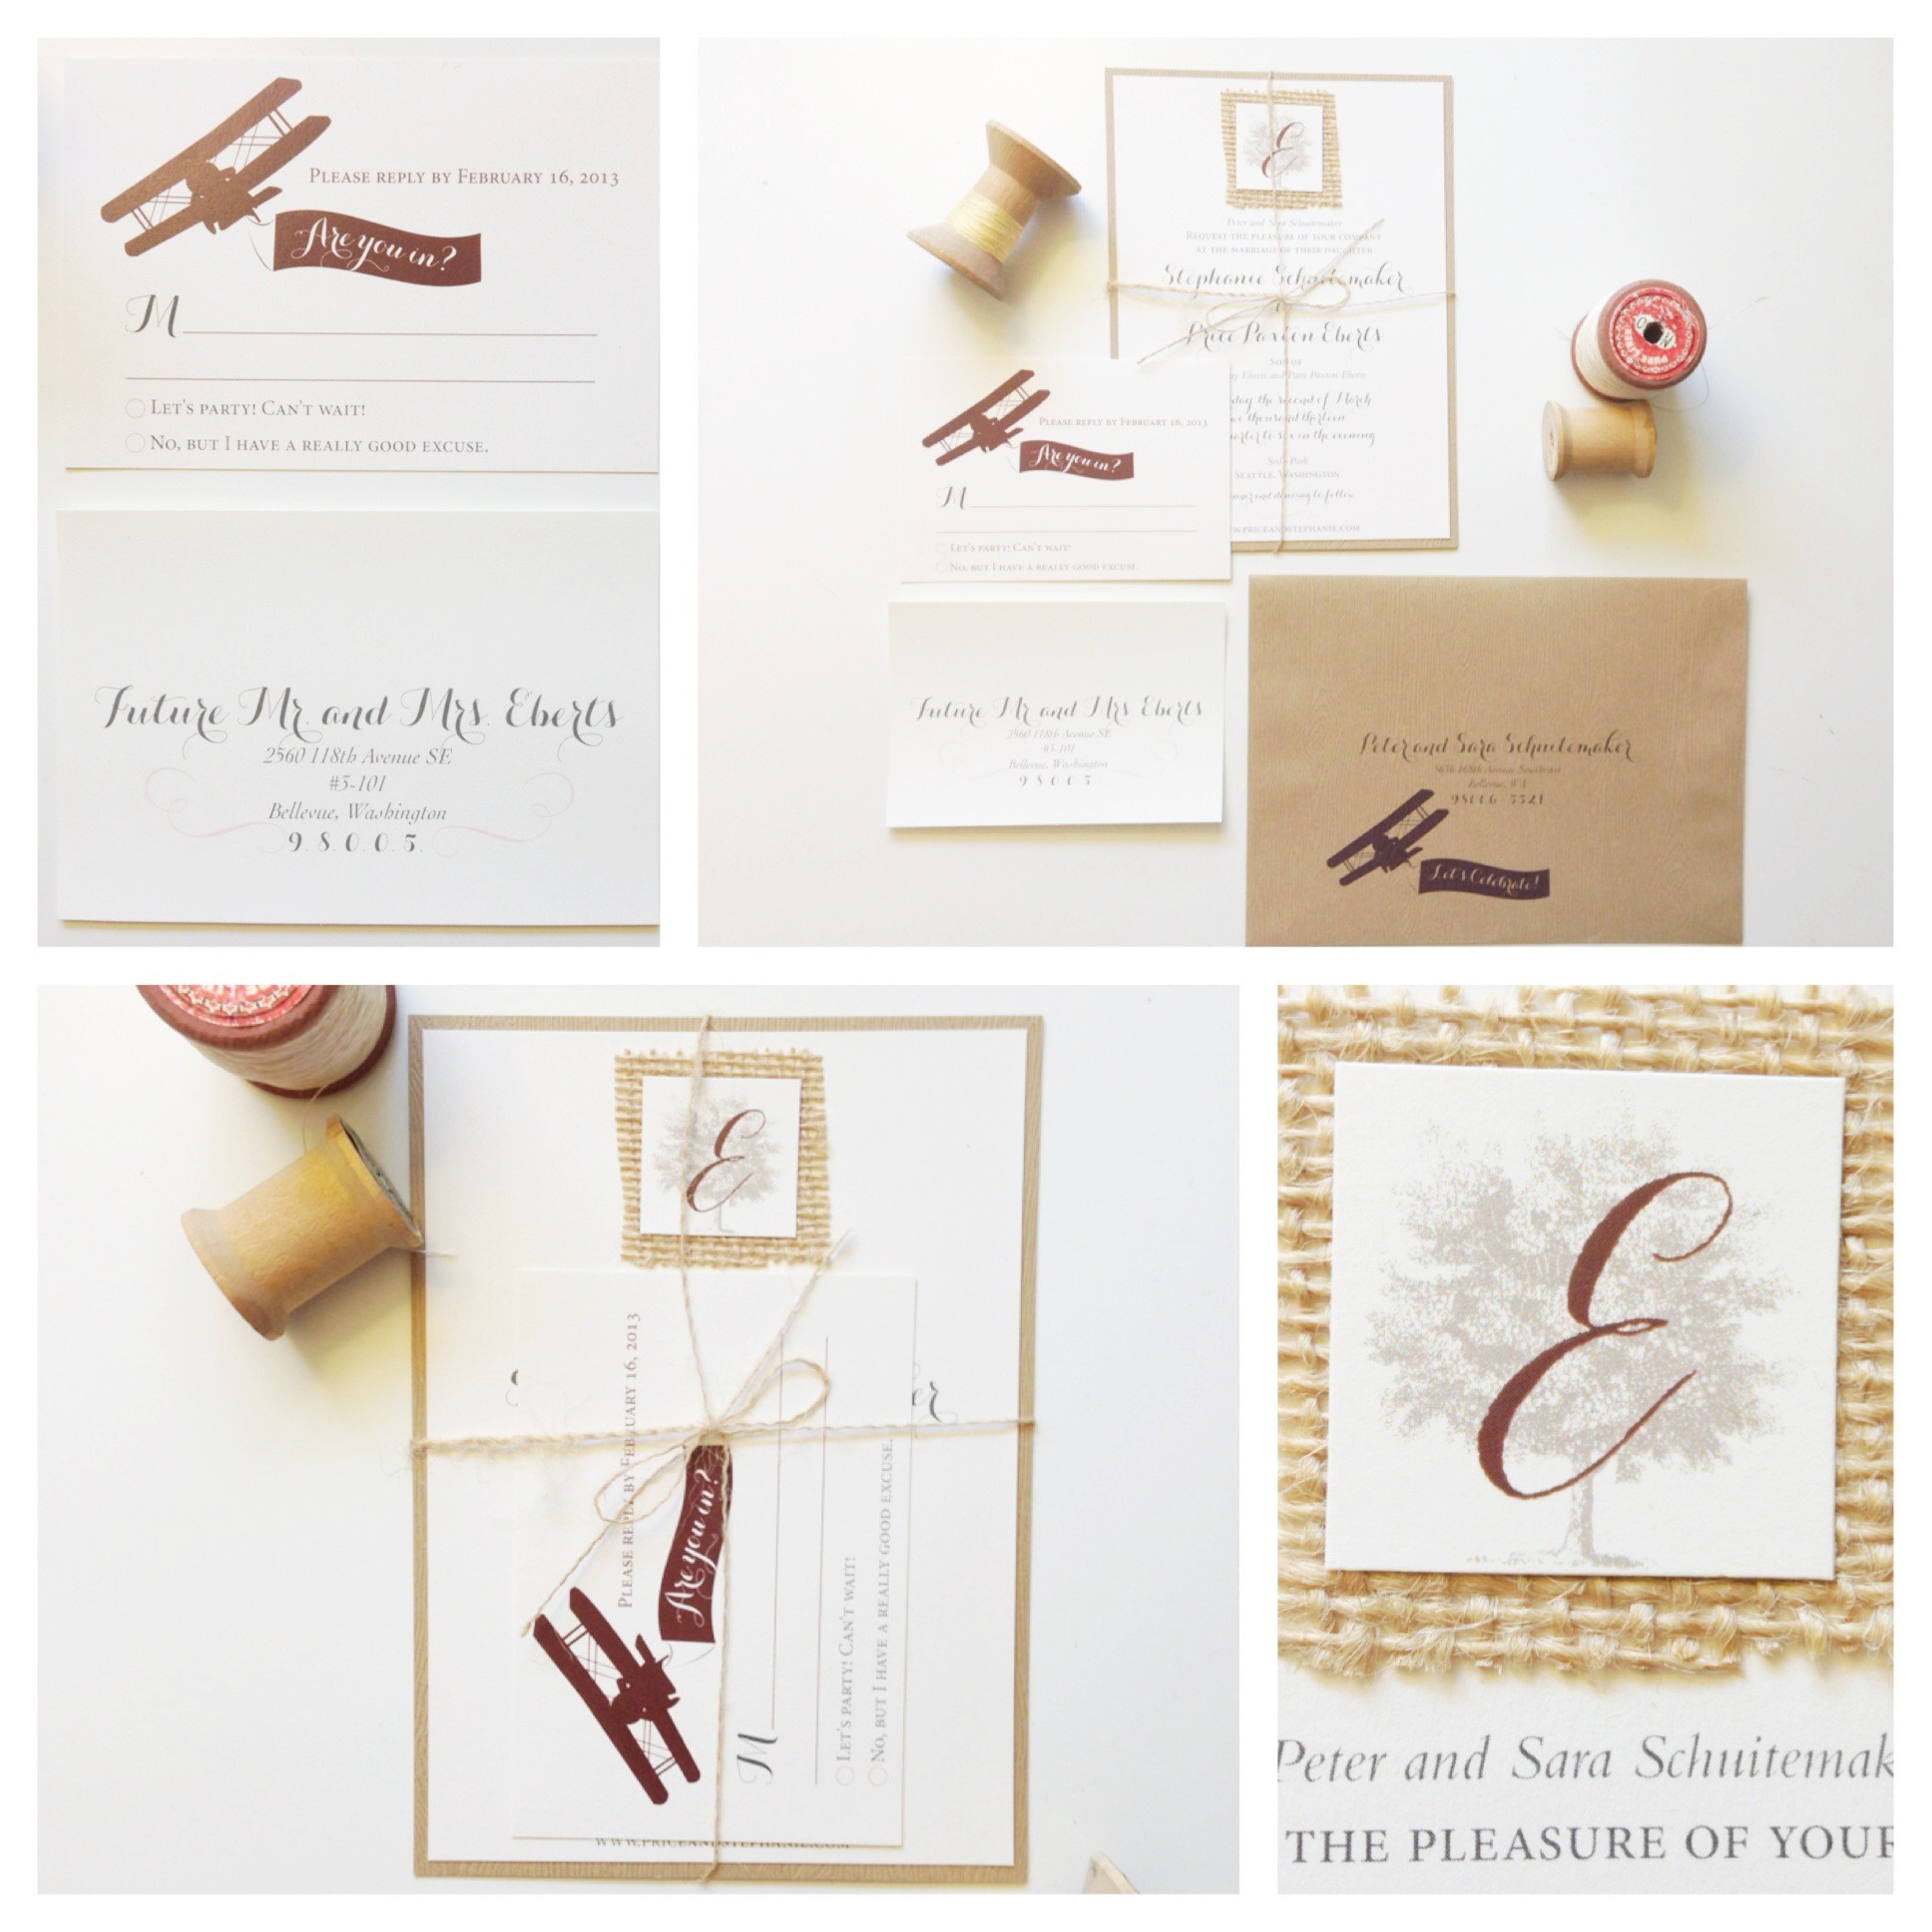 Kerri Efendi Designs Seattle Wedding Invitations